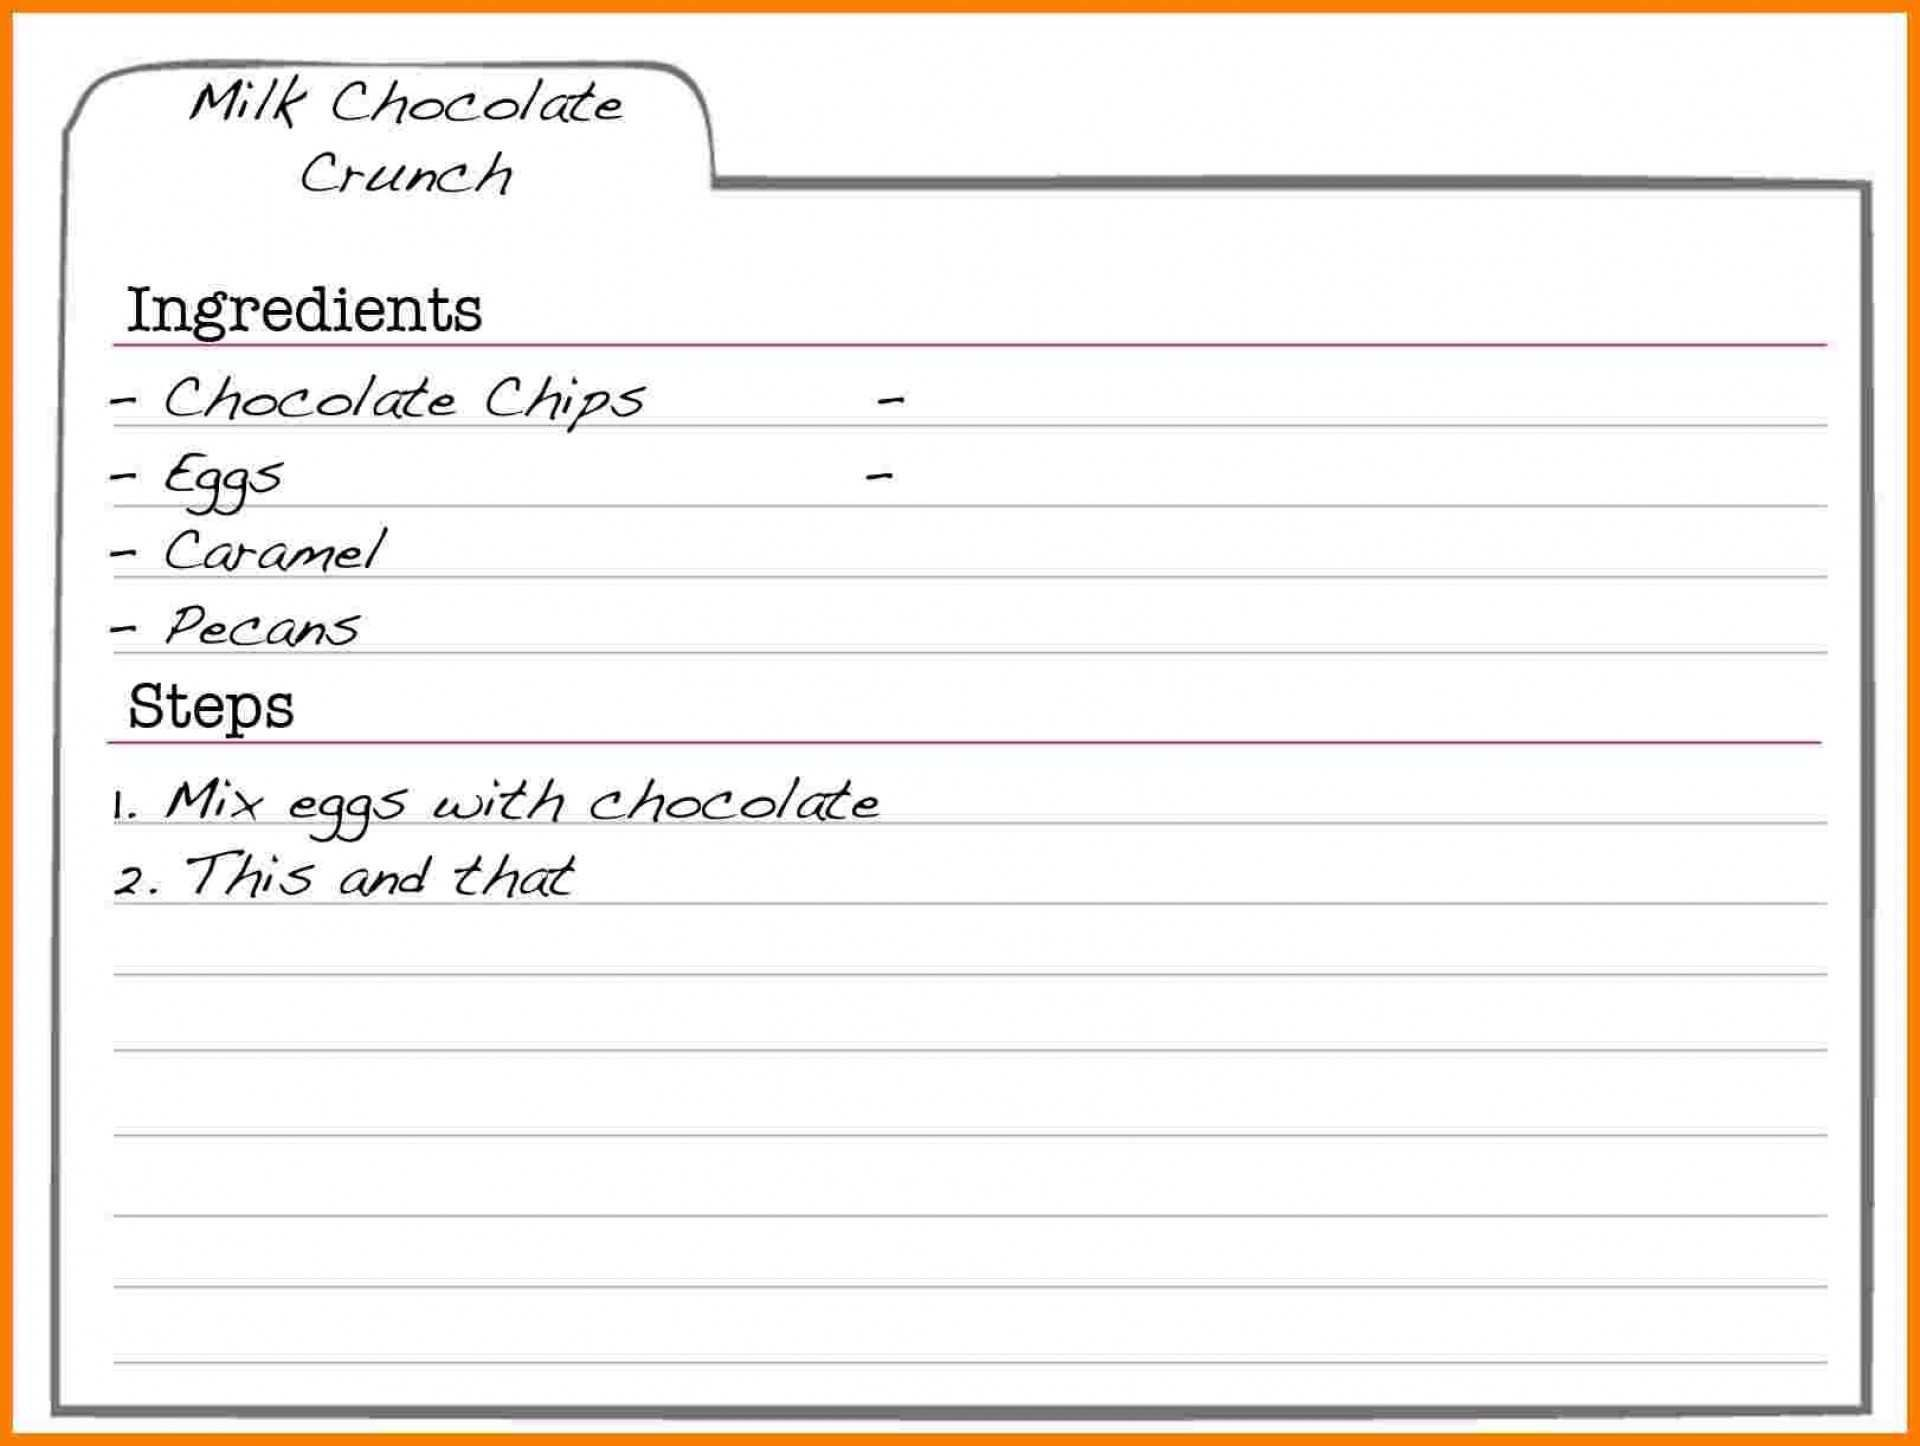 002 Incredible Free Recipe Template For Word Concept  Book Editable Card Microsoft 4x6 Page1920